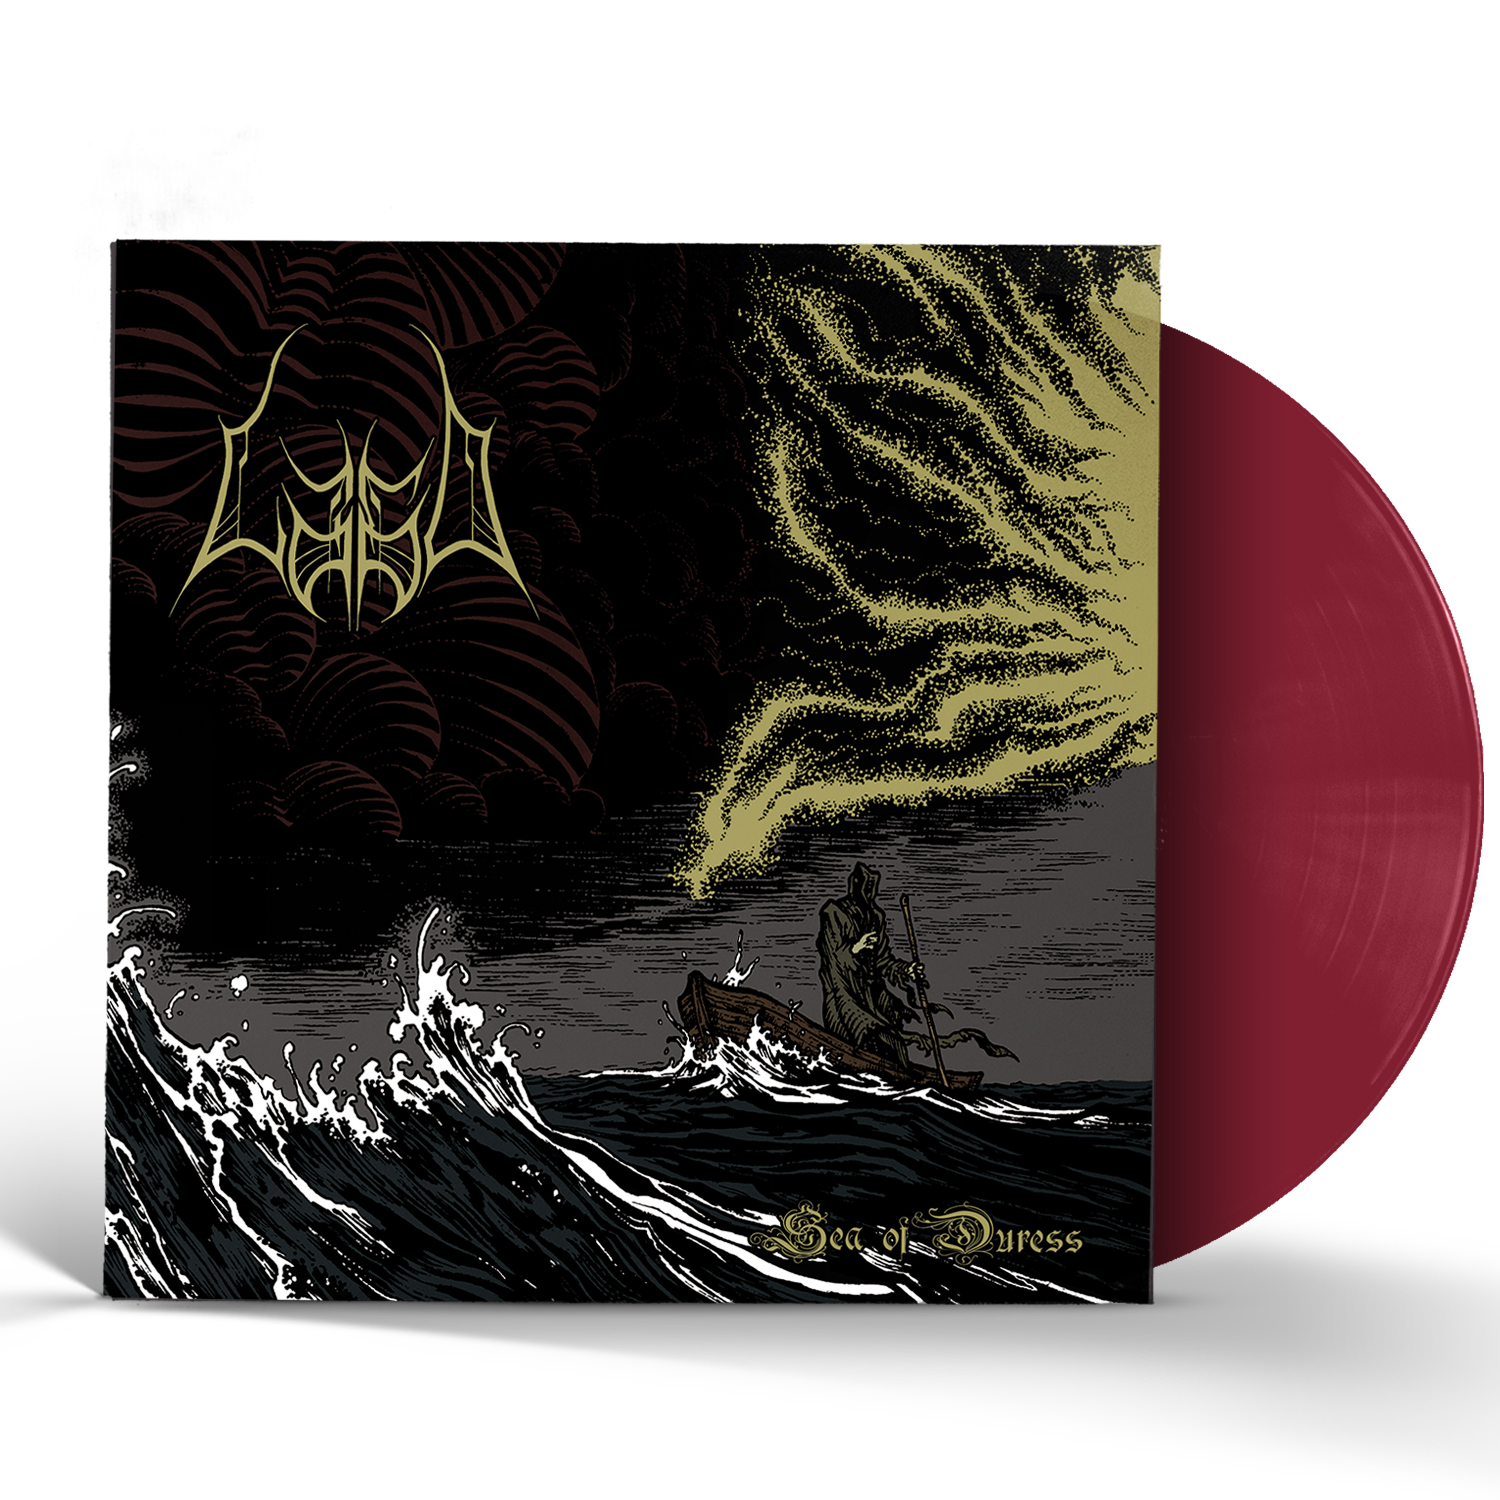 Sea Of Duress LP + Longsleeve Bundle